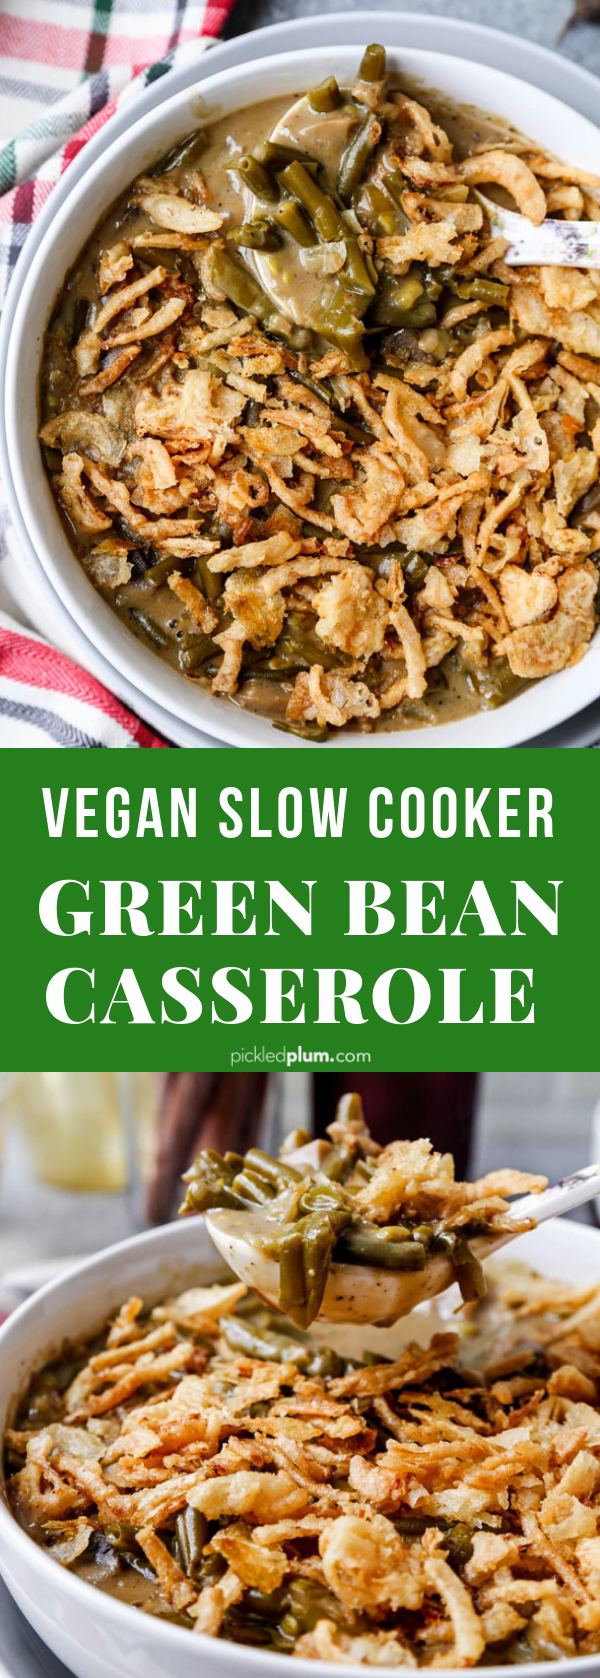 Slow Cooker Green Bean Casserole Vegan Pickled Plum Food And Drinks Recipe Slow Cooker Green Beans Green Bean Casserole Bean Casserole